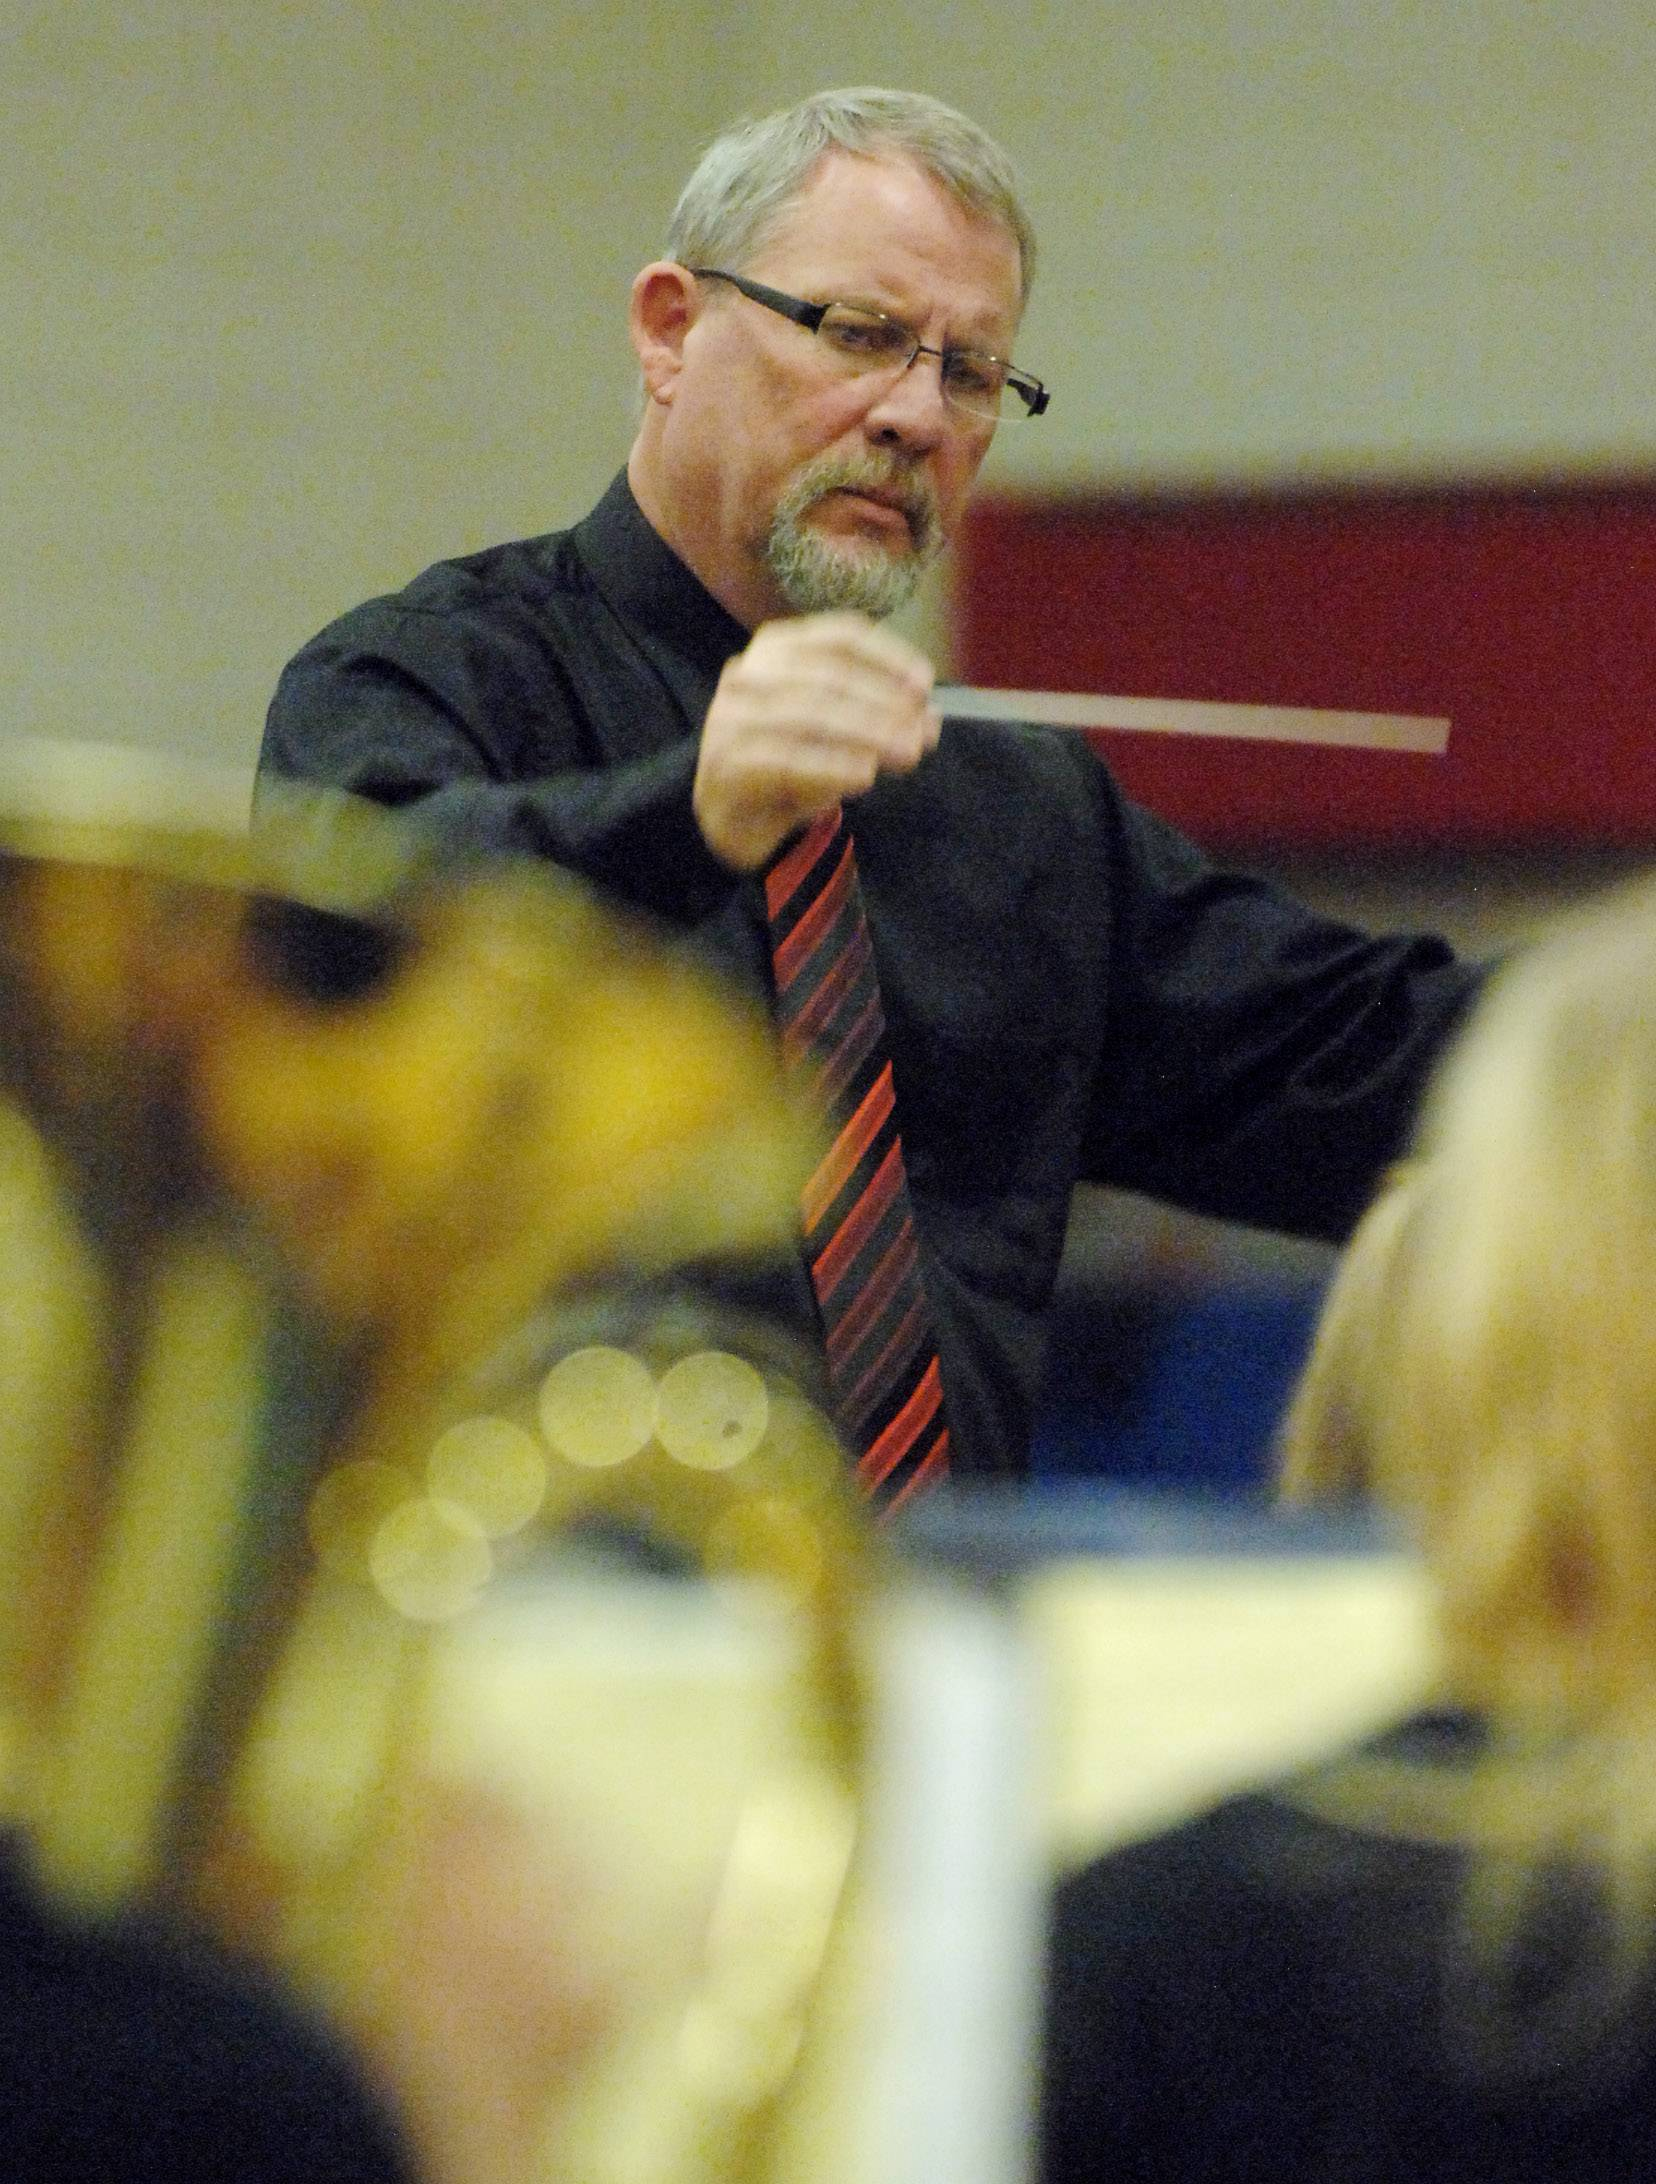 John Harshey conducts the West Oak Middle School's Symphonic Band.